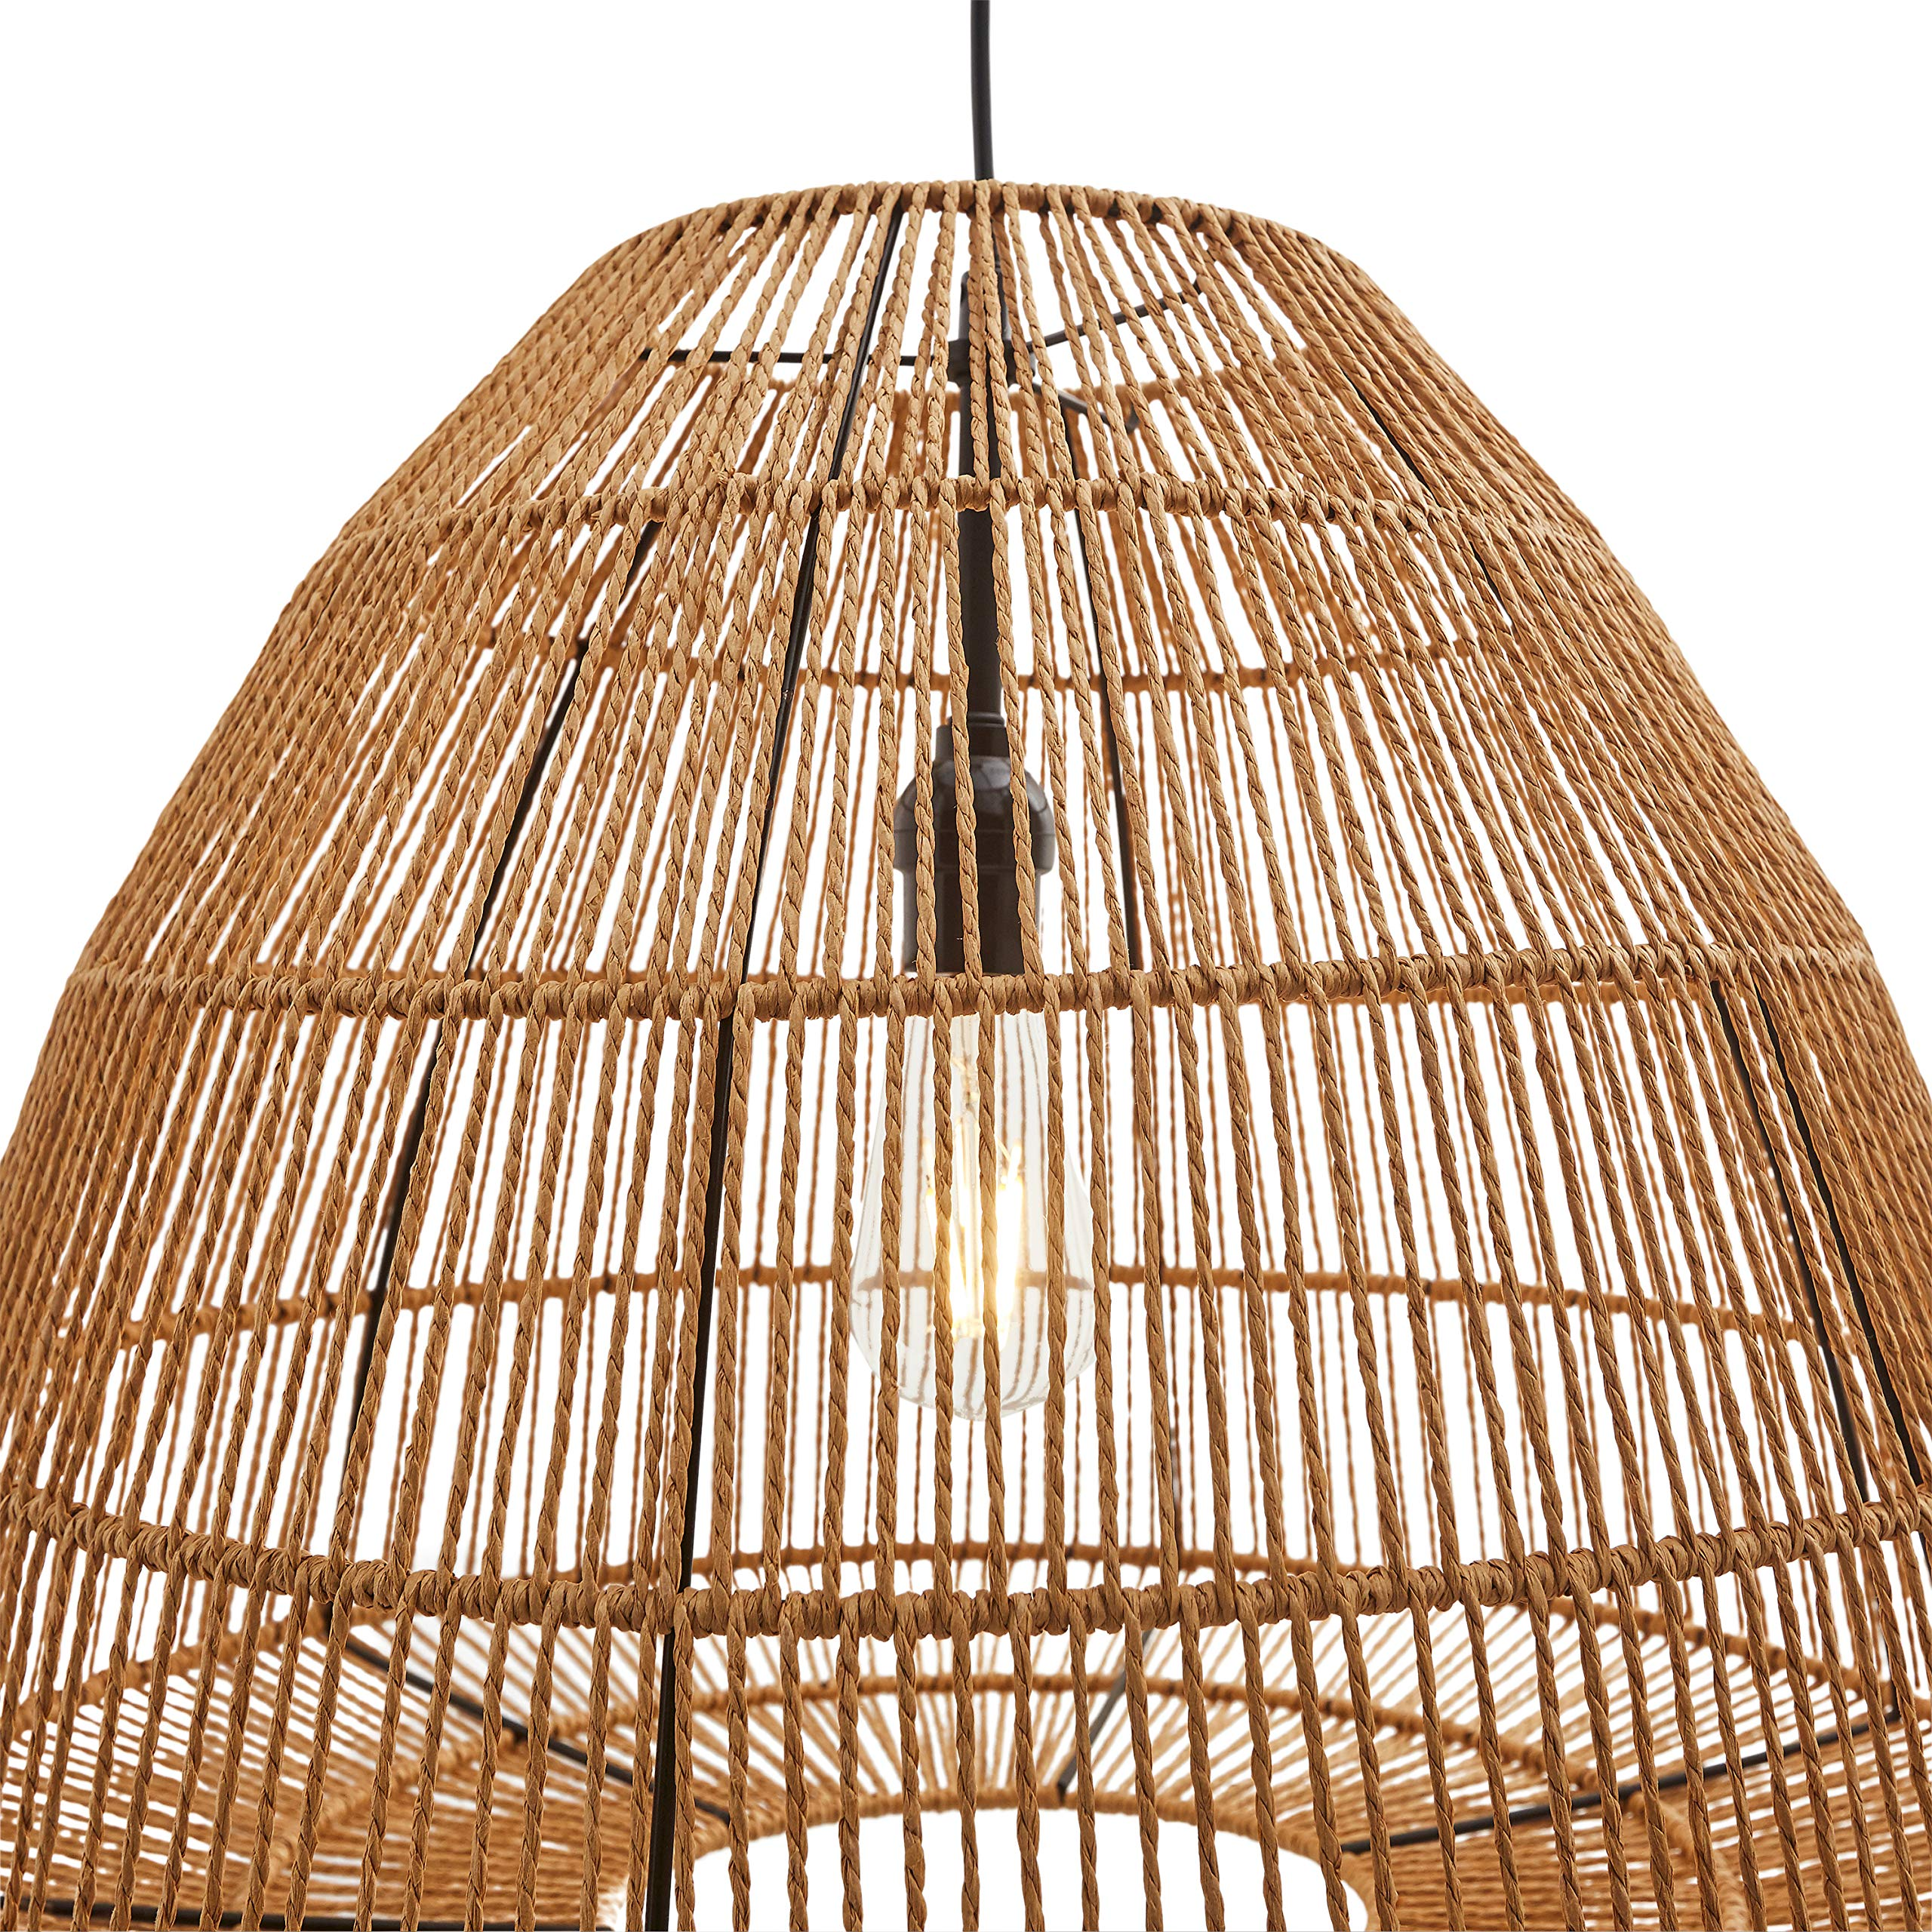 Stone & Beam Rustic Global Round Woven Pendant with Bulb, 44.5''H, Natural Rattan by Stone & Beam (Image #5)